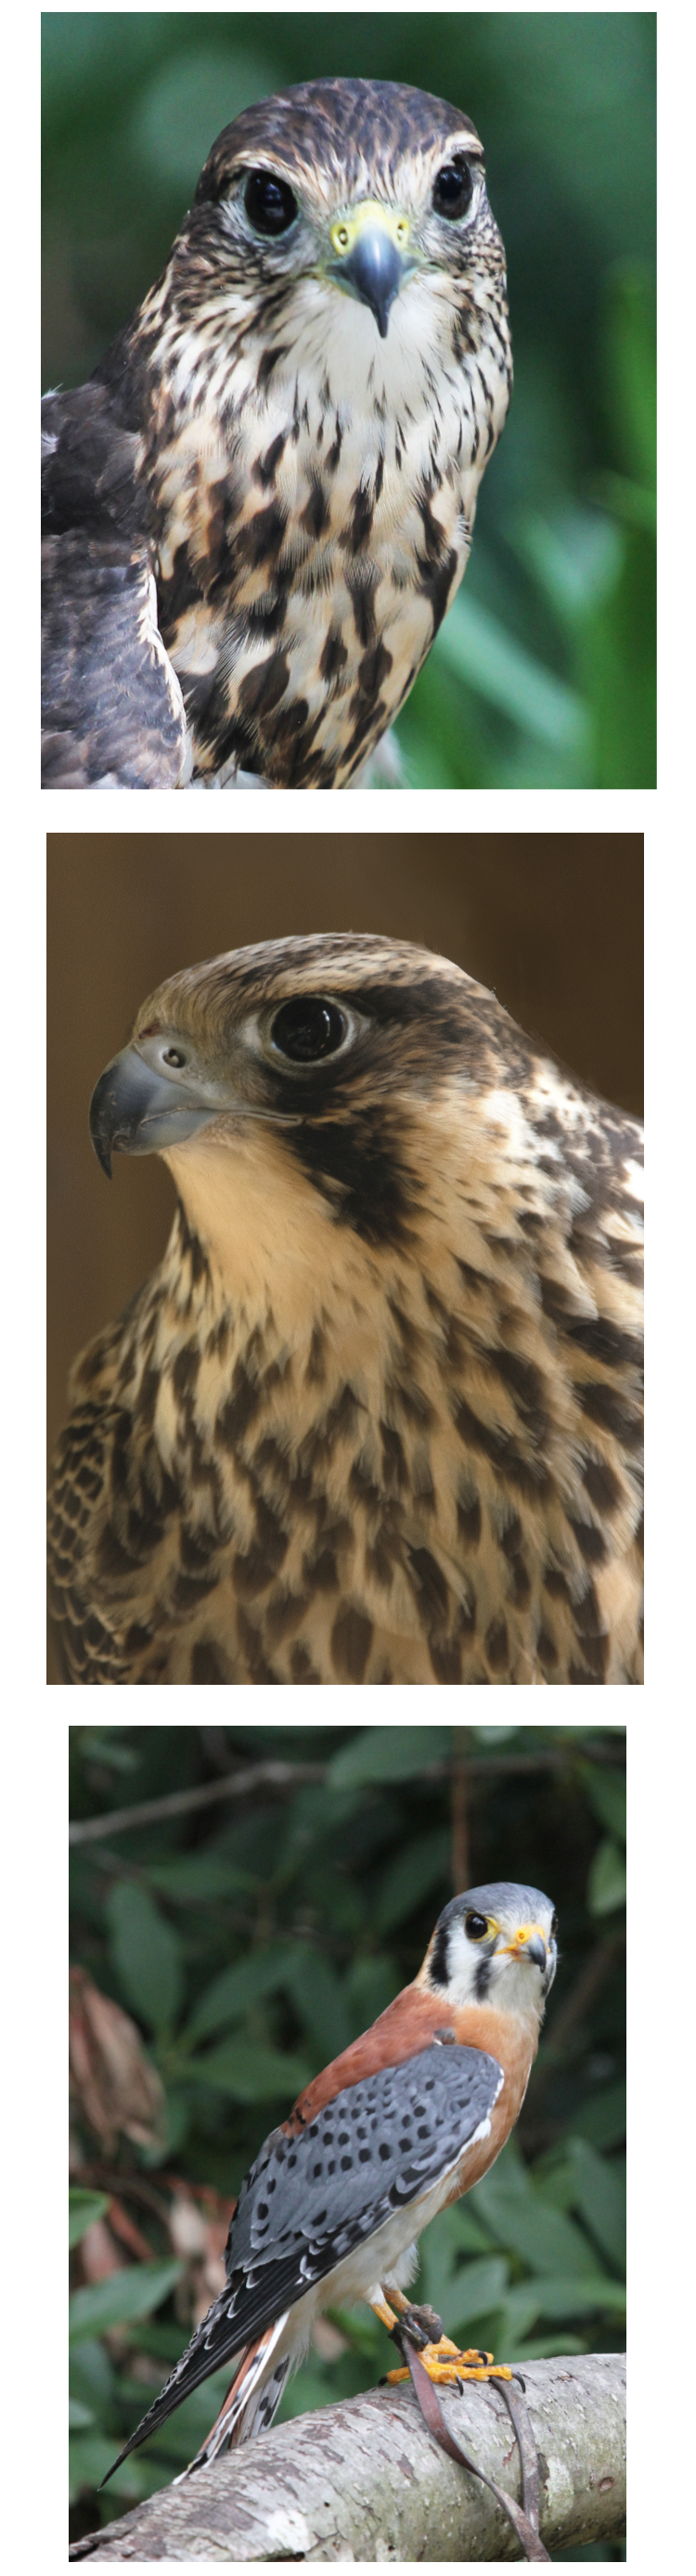 photos of falcons